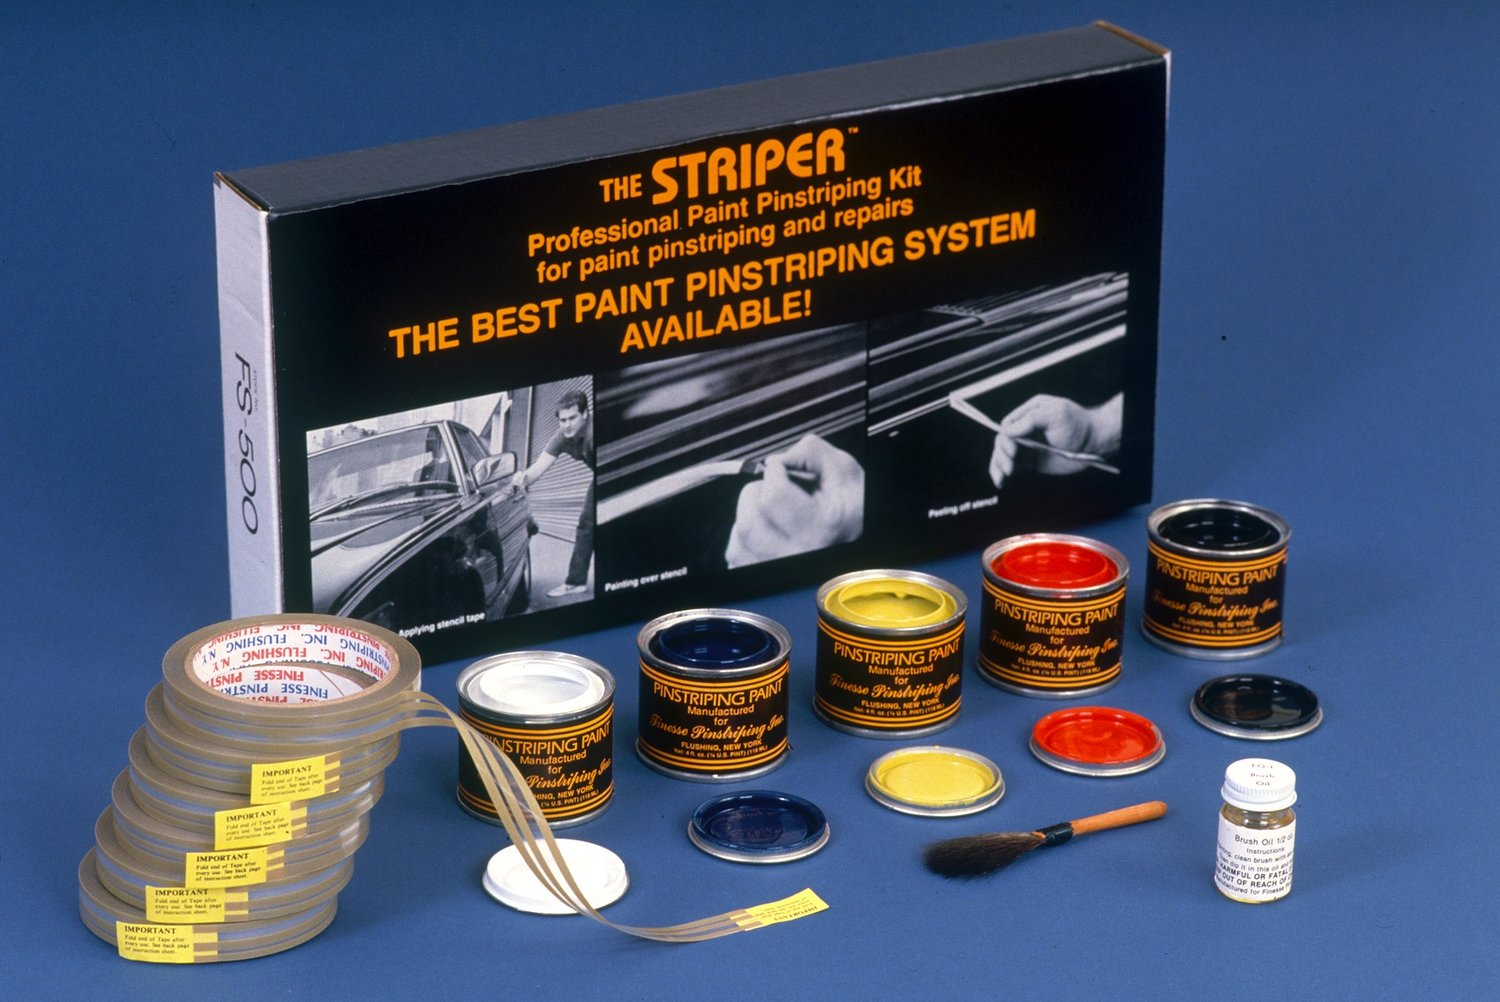 The FS-500 Professional Paint Pinstriping Kit